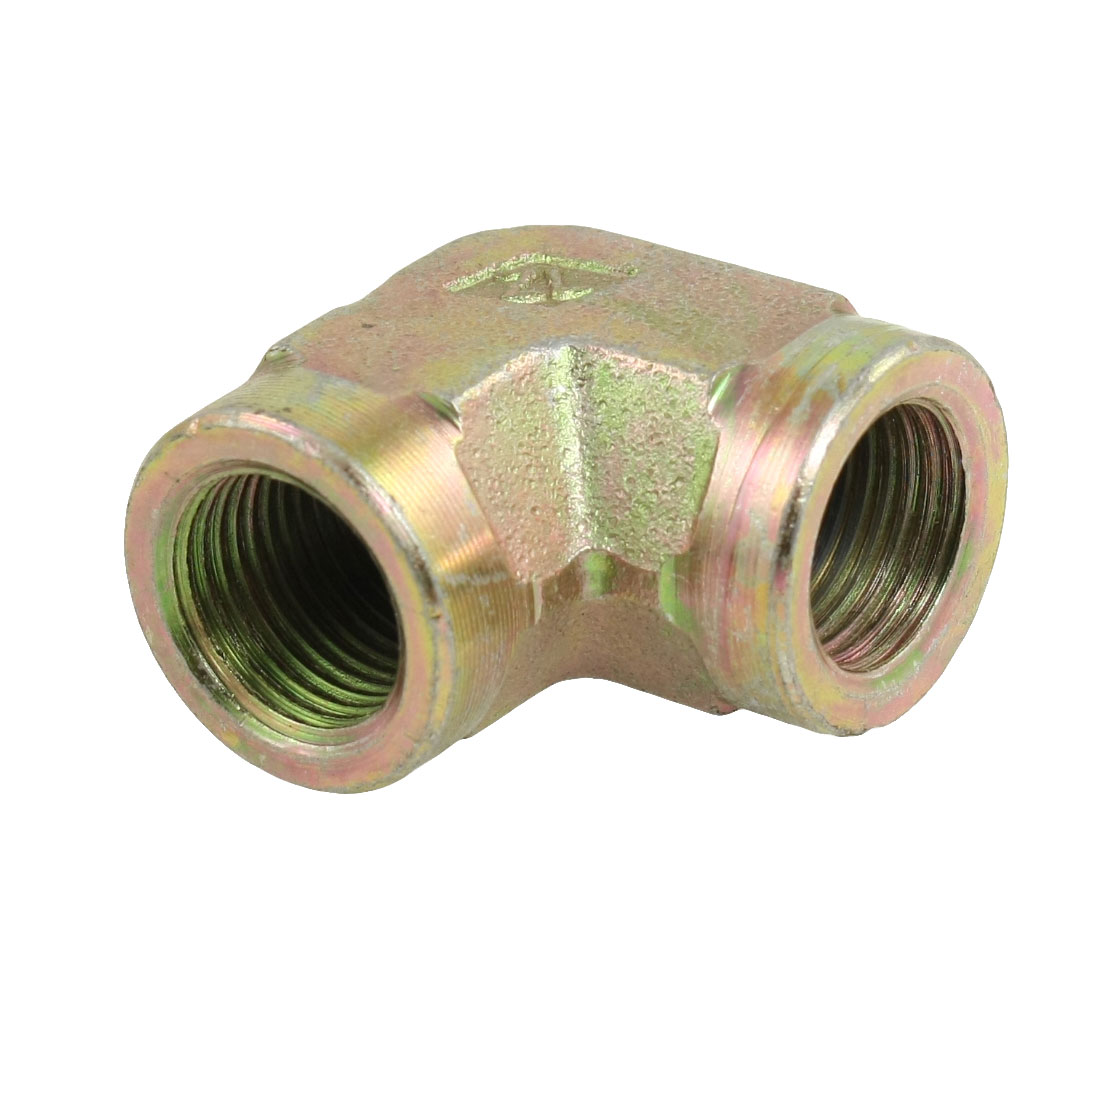 """18.8mm 0.74"""" Female Threaded 90 Degree Elbow Fitting Union Adapter"""